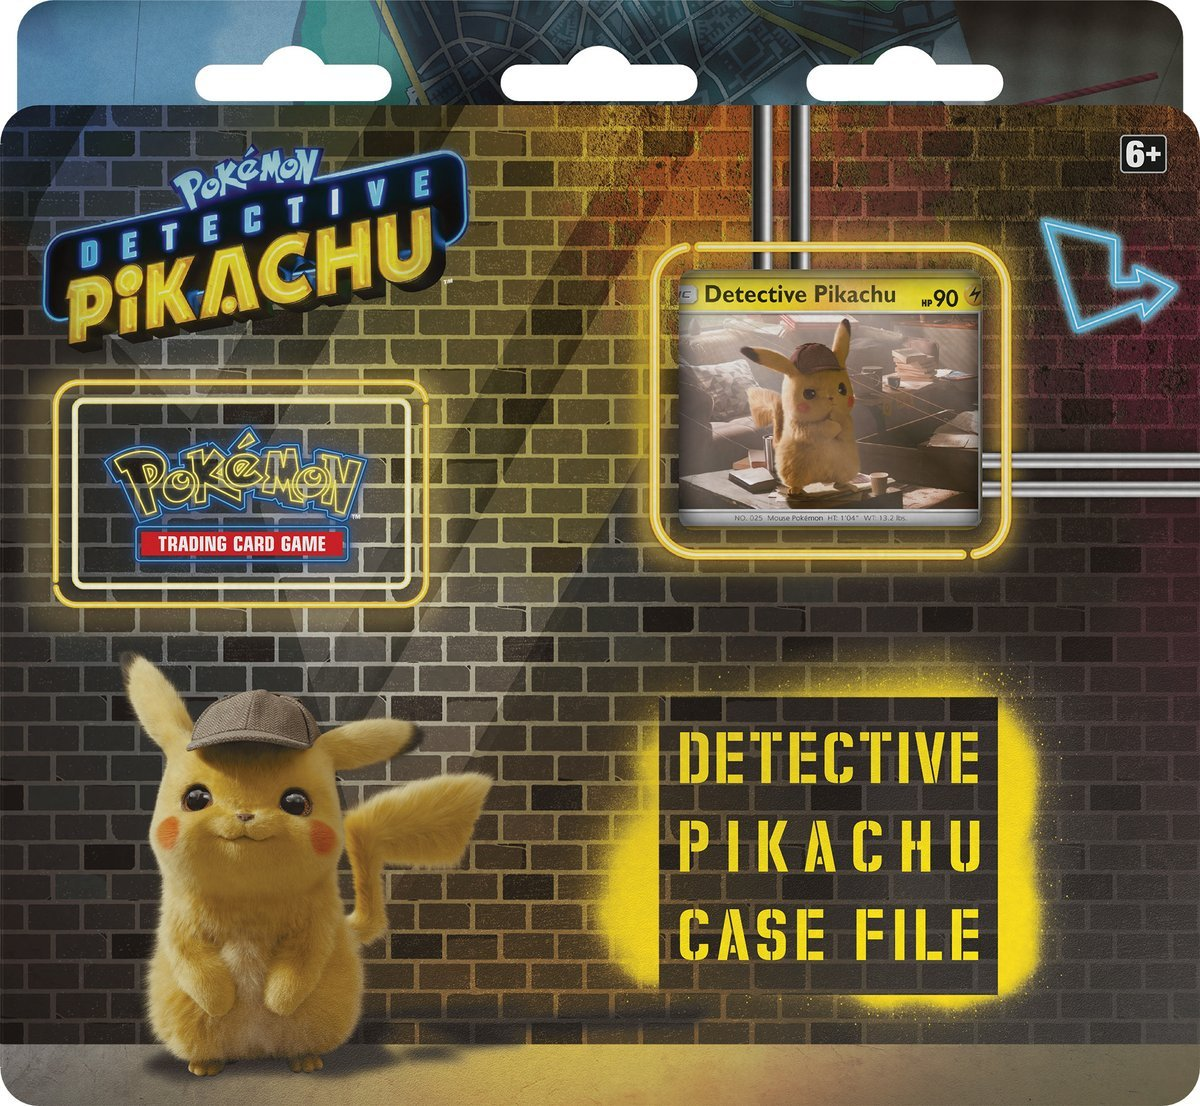 Here S Your First Look At The Special Detective Pikachu Pokémon Card